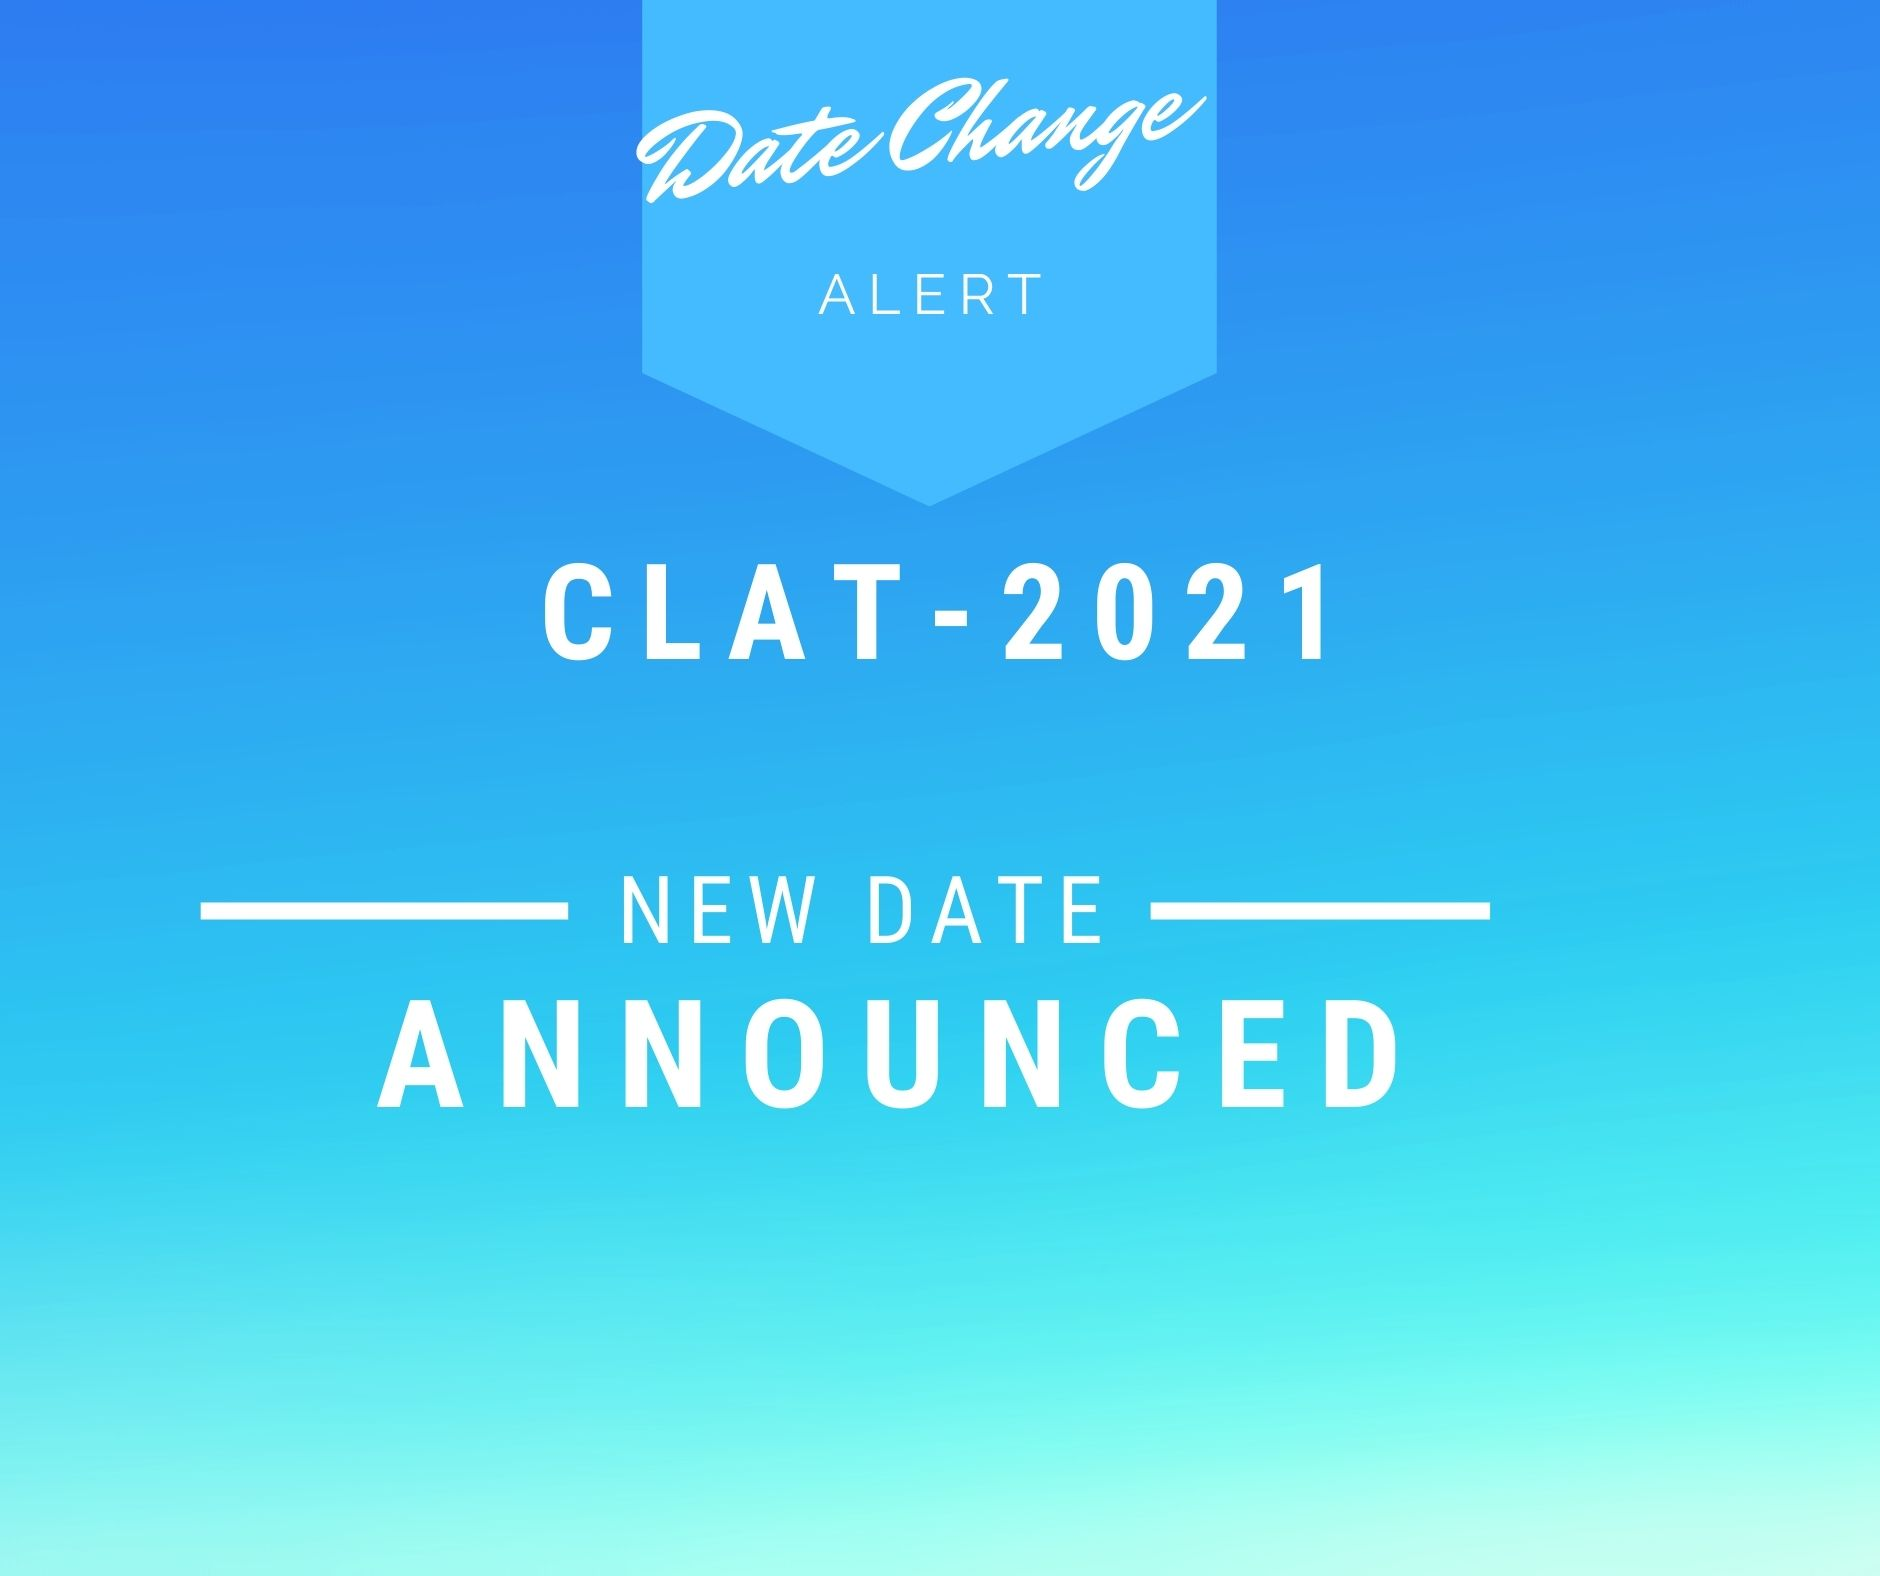 CLAT-2021 Rescheduled